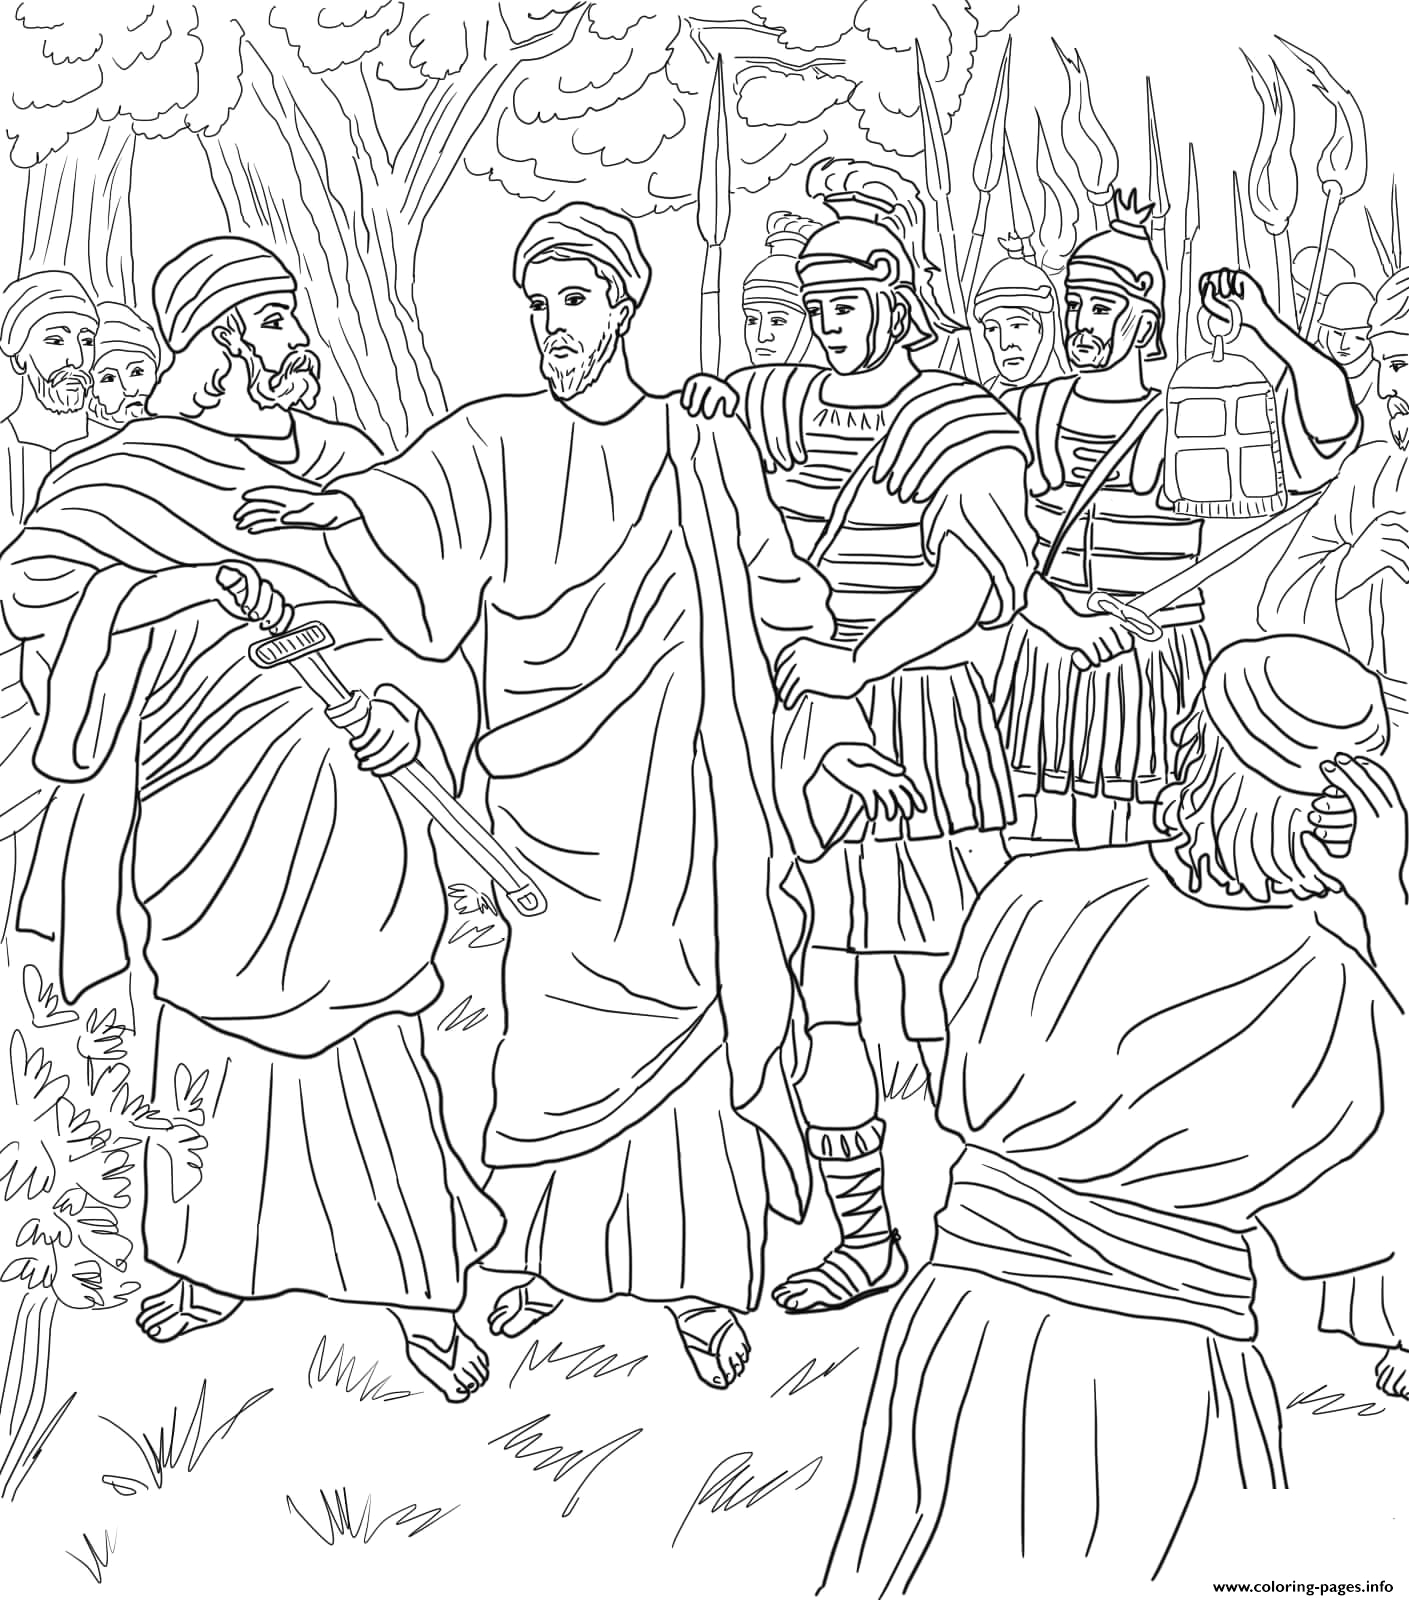 good friday 4 jesus arrested in the garden of hsemane printable coloring pages book